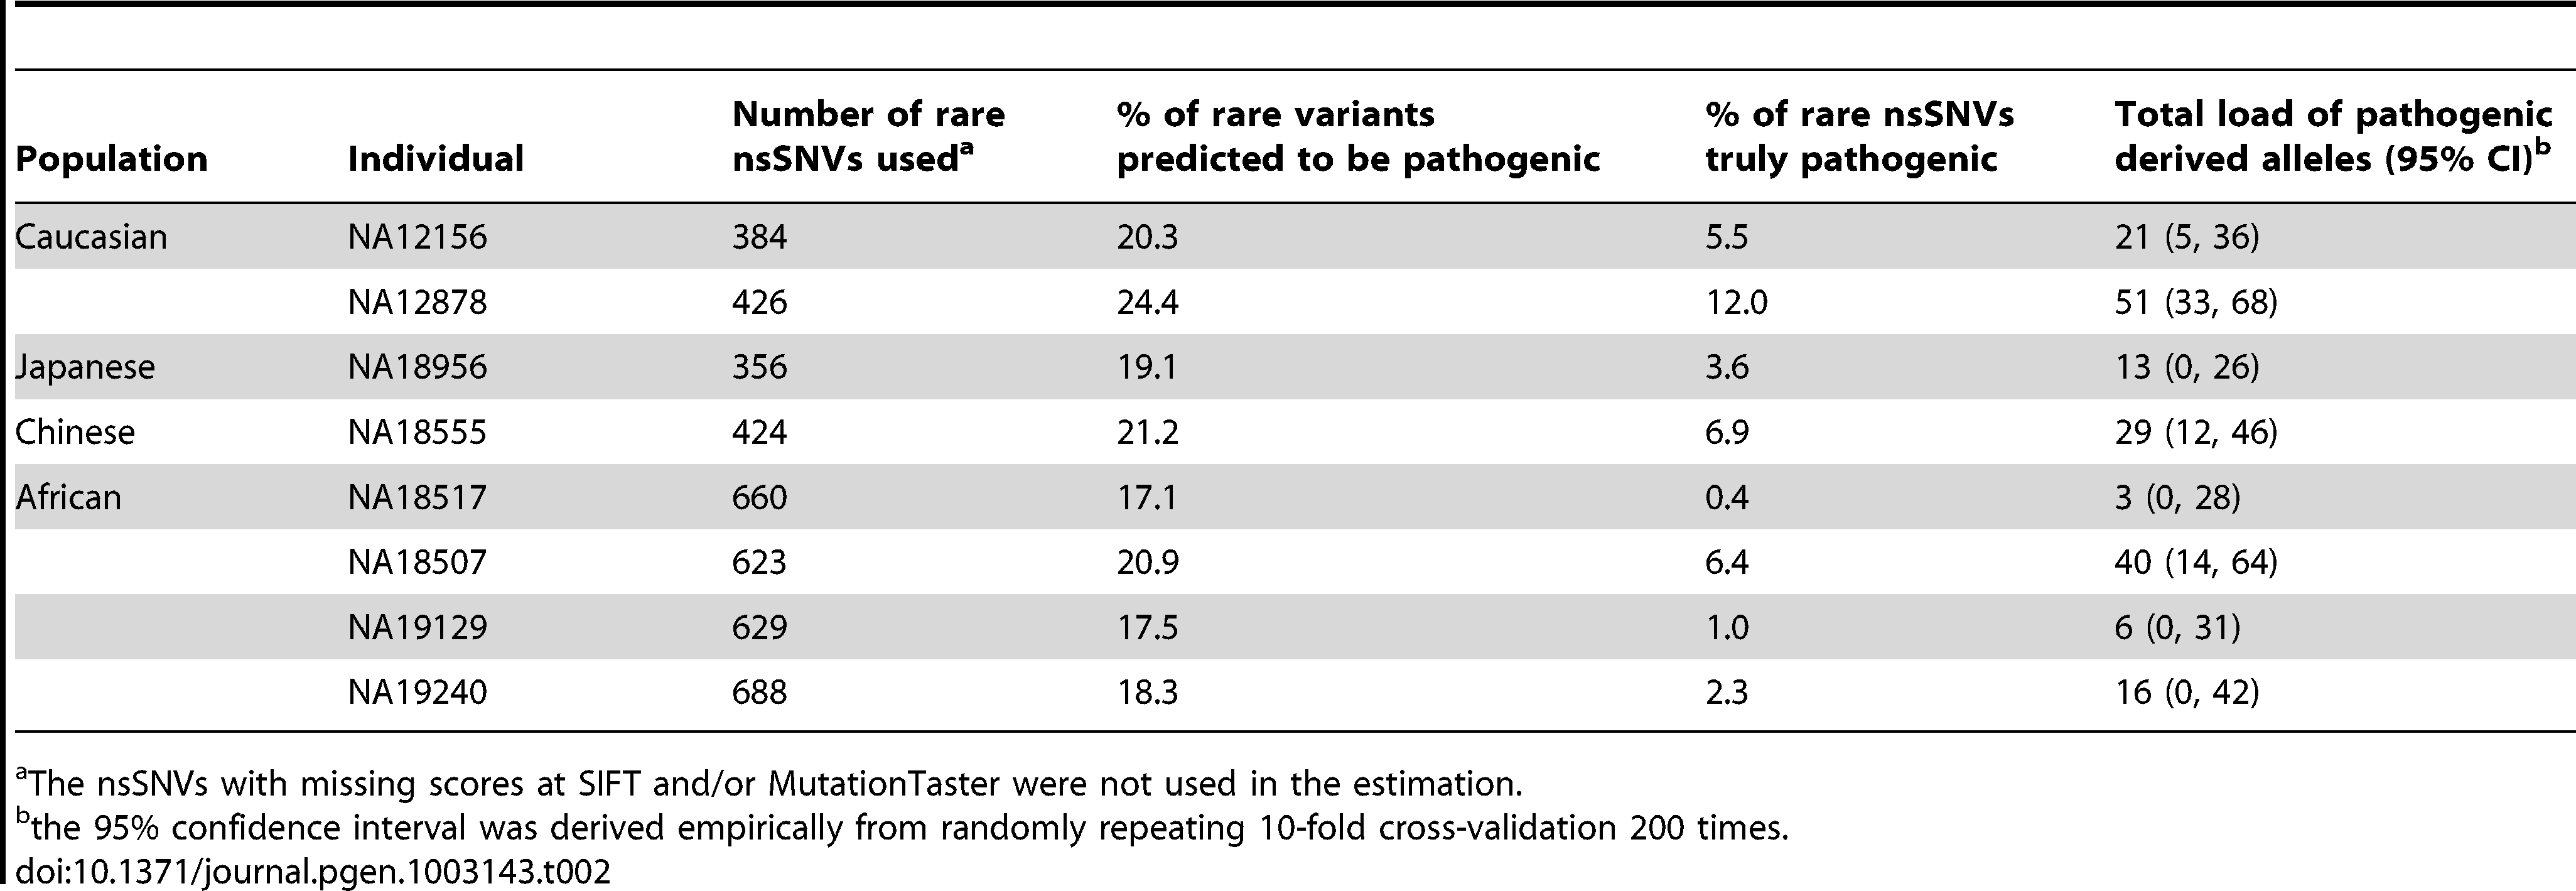 The proportion of pathogenic rare nsSNVs and total load of pathogenic derived alleles in 8 HapMap subjects with high coverage sequencing data.